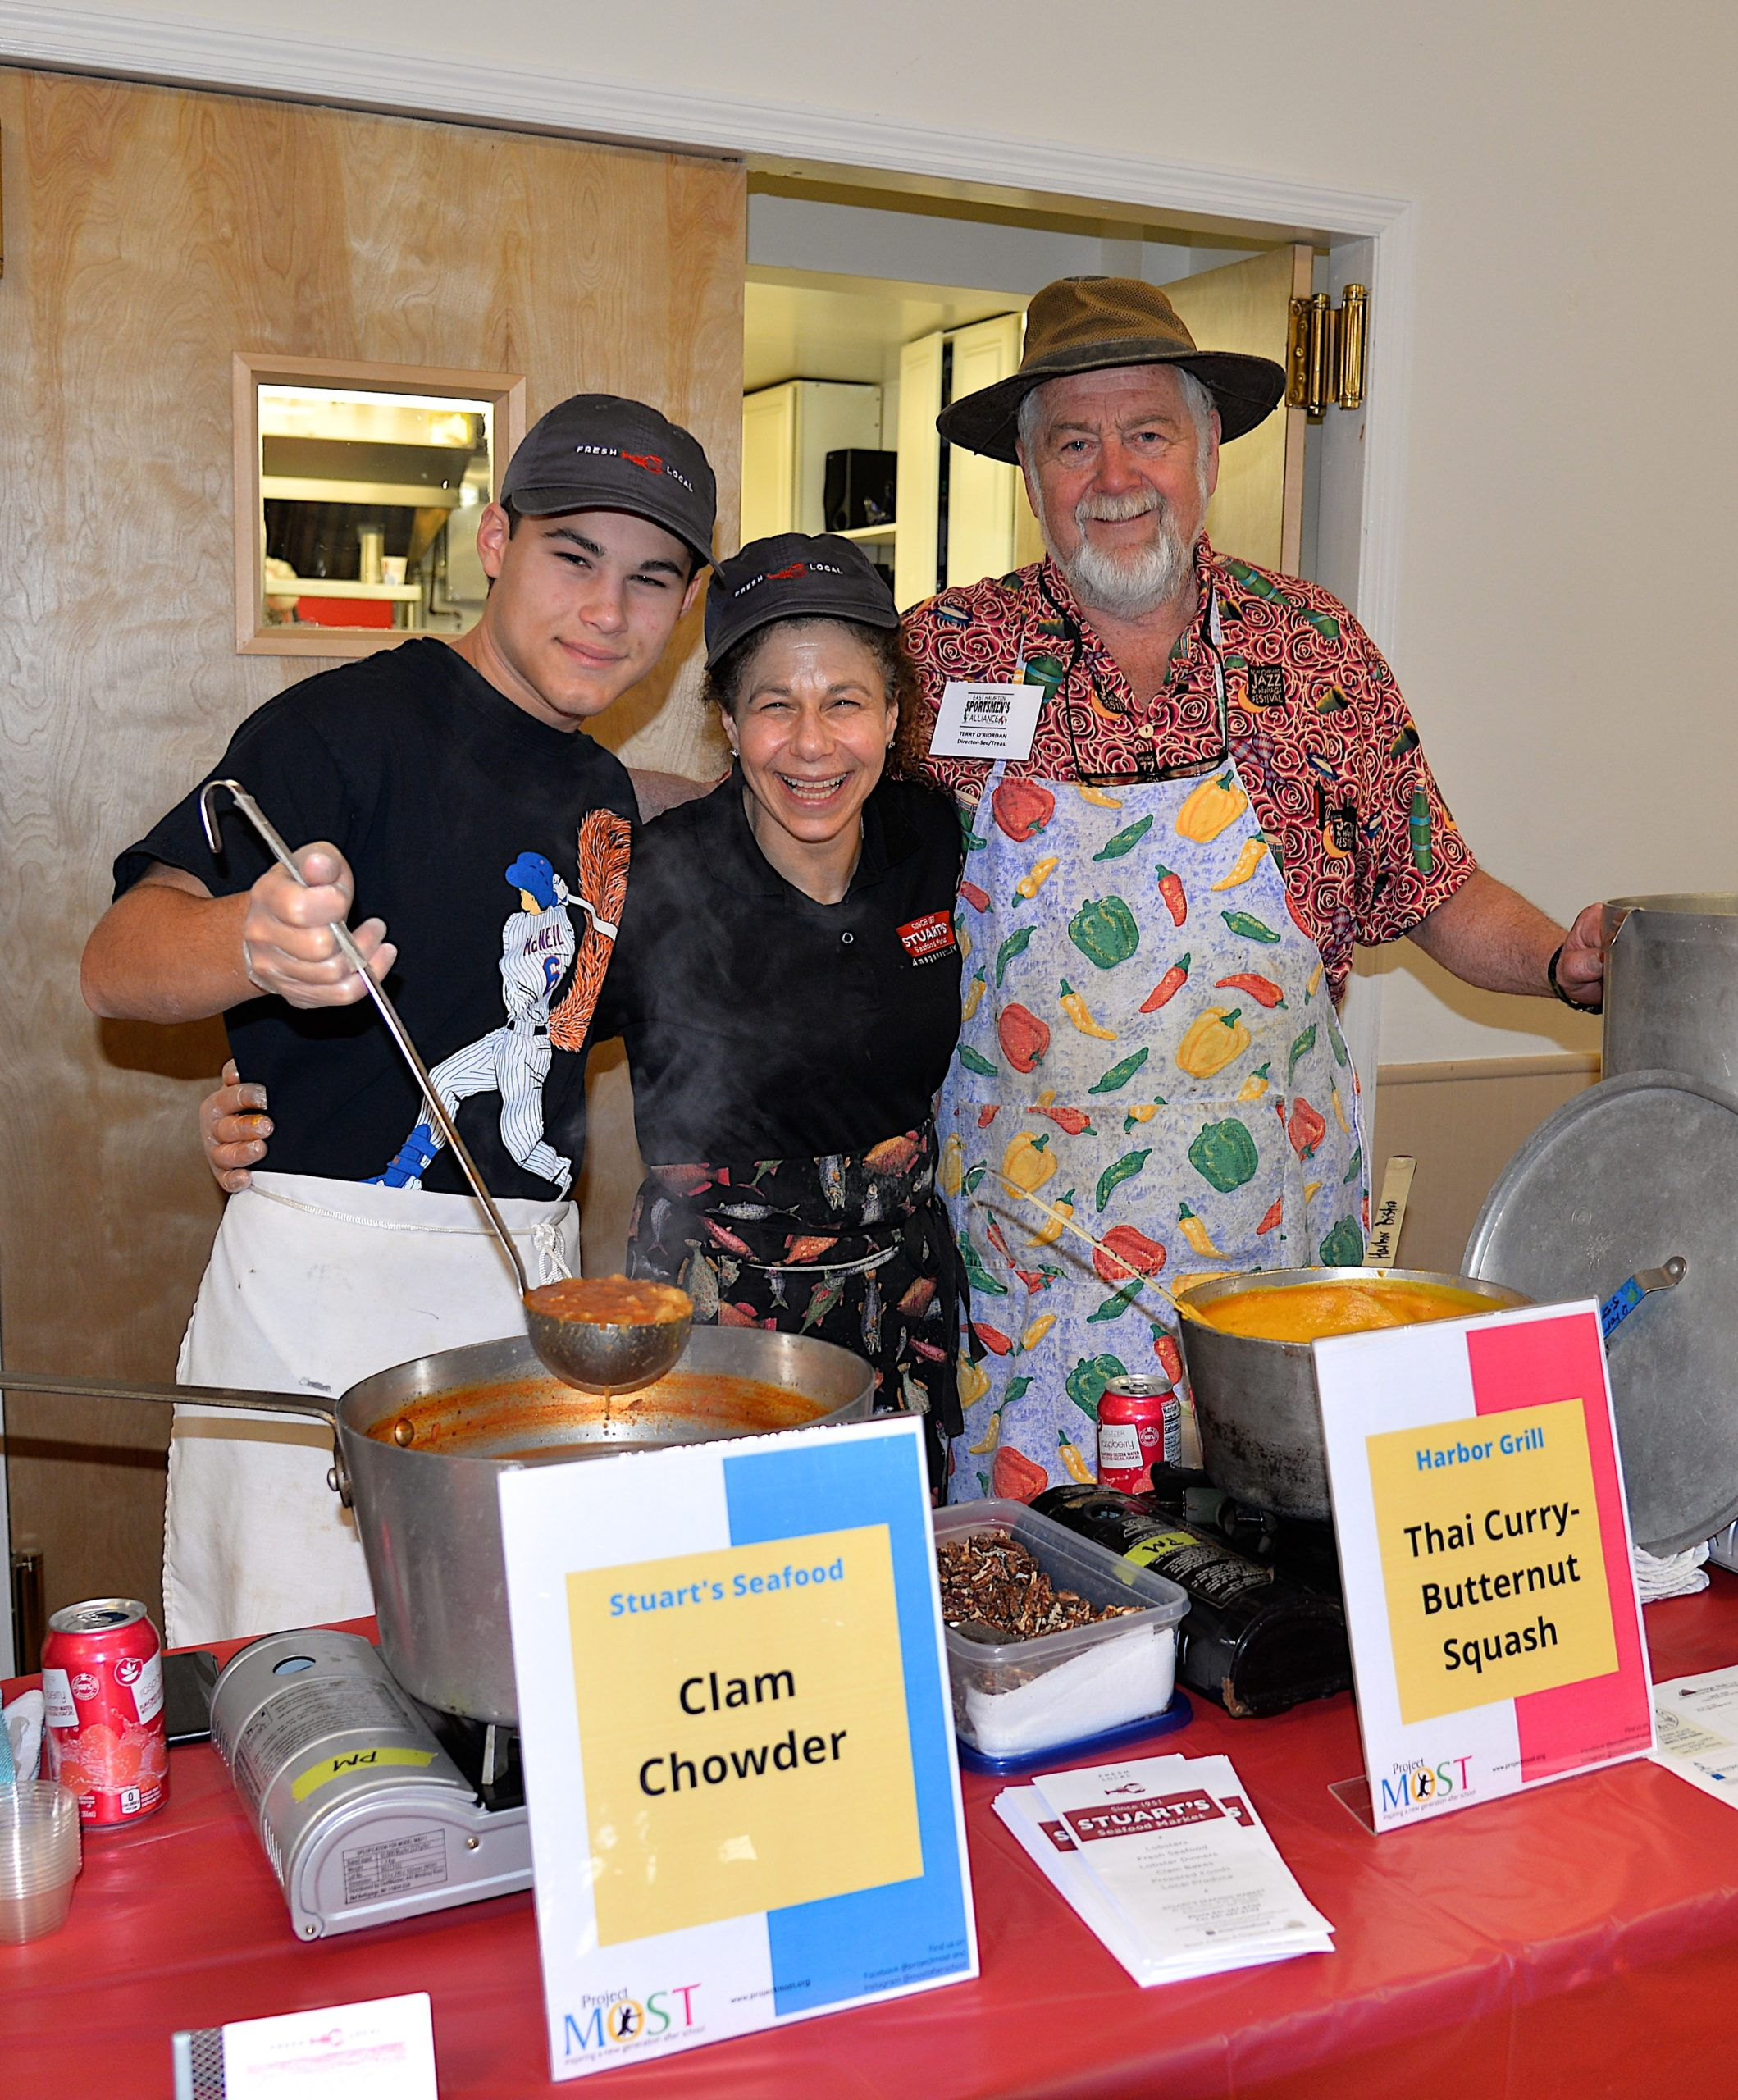 Empty Bowls, a fundraiser for Project Most, with soups from local chefs and restaurants took place at the Amagansett American Legion hall on Sunday. Dante and Charlotte Sasso, and  Terry O'Riordan serving up their soup. KYRIL BROMLEY